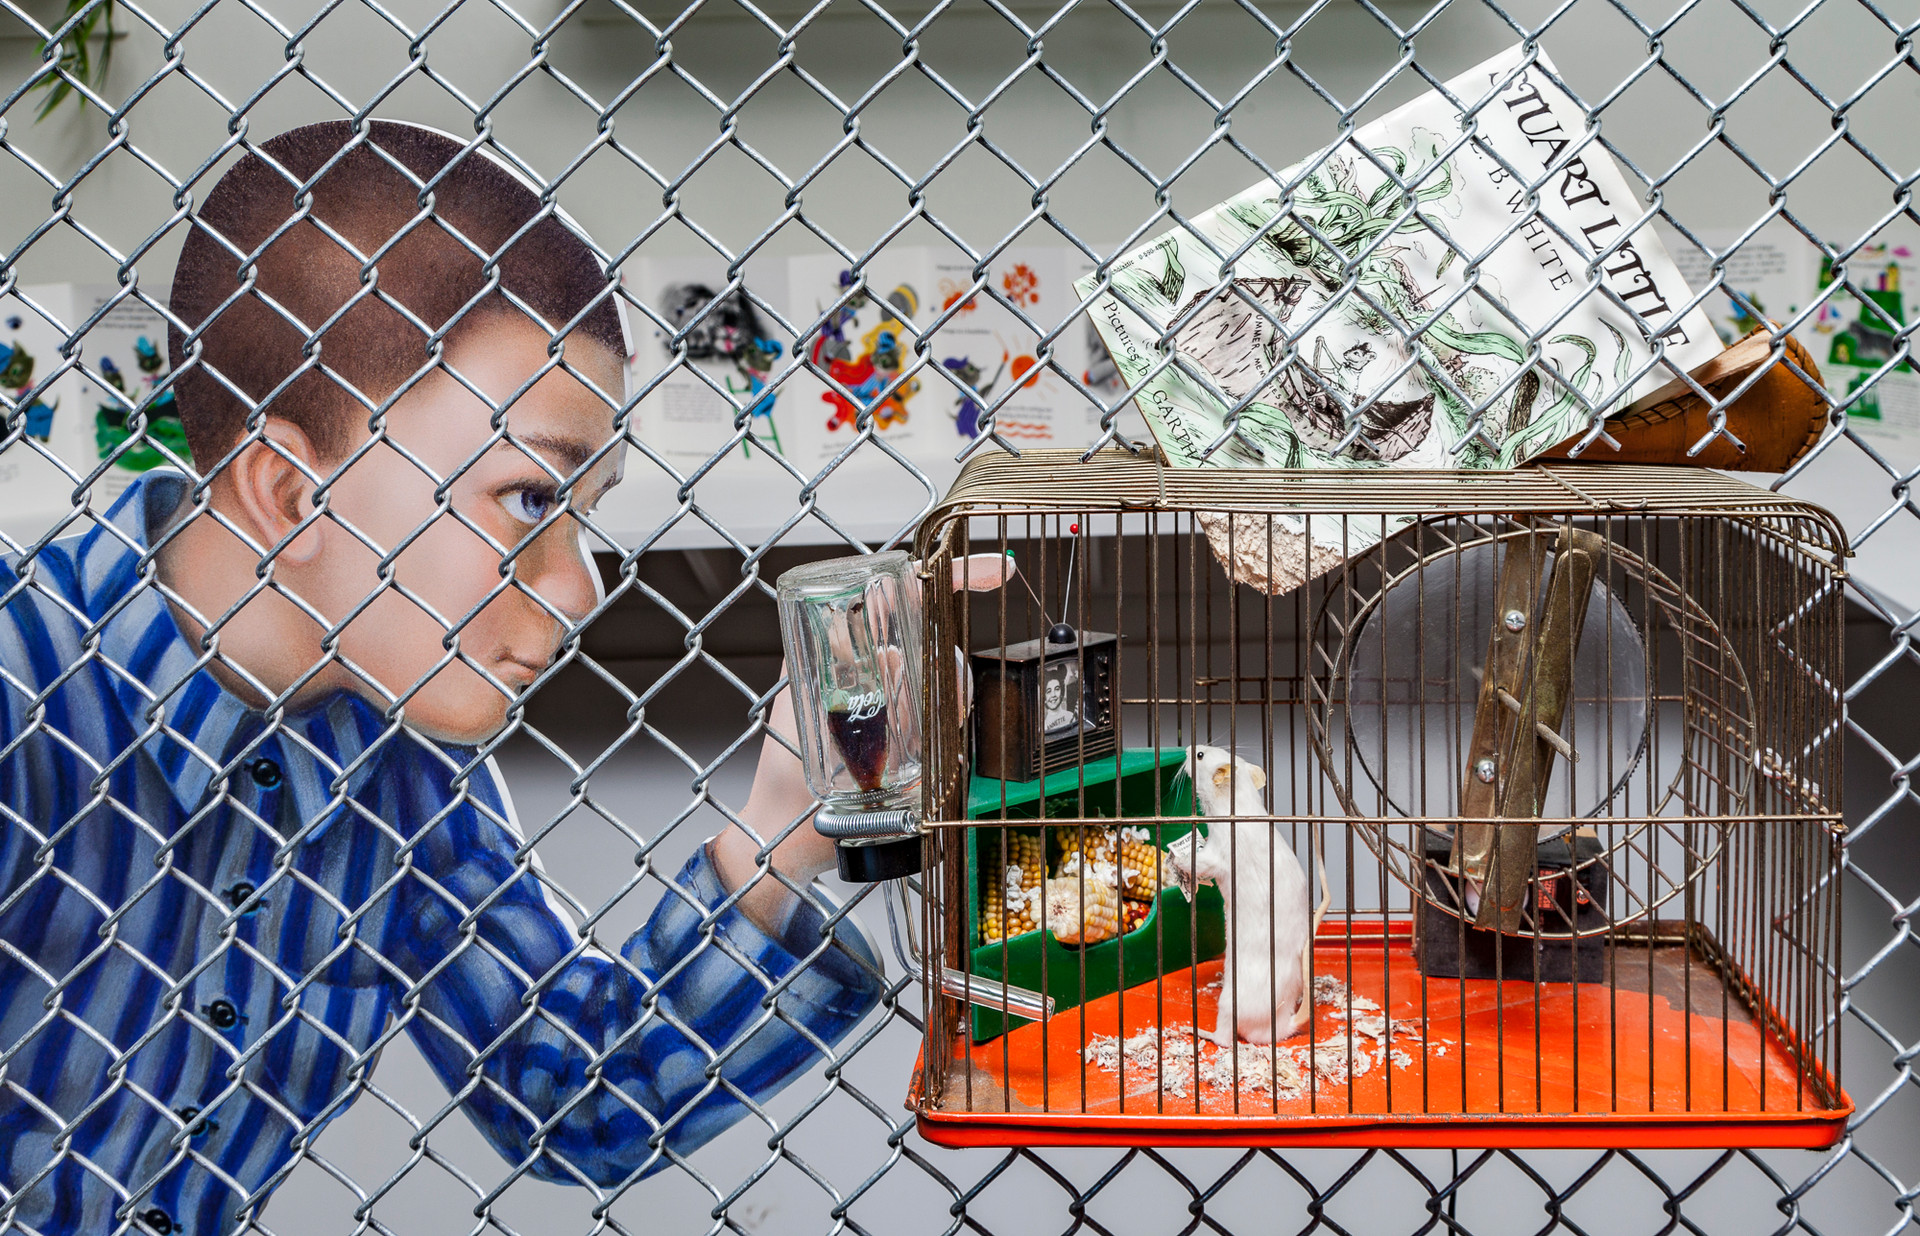 The life-sized figure of the boy that is part of this tableau continues the theme of incarceration in his shirt's vertical stripes, reminiscent of the garb worn in the concentration camps.   In direct opposition to the warning signage, the boy is sticking his index finger of his left hand is poking into the cage of the mouse, the implicit danger is that it will be gnawed on like the book Stuart Little that is the featured altered book, altered by the fact of its being gnawed on by the cage's inhabitant. It appears that the mouse has pulled the bottom of the book into his cage and gnawed on it because the floor of his cage is littered with book debris.  Stuart Little is the altered book that functions as the lead-in to the Animal Friends tableau. It's installed directly in the chain link fence and can be viewed both from the exterior and the interior. Also, it's a cage within a cage and in that sense is a metaphor for the larger tableau.